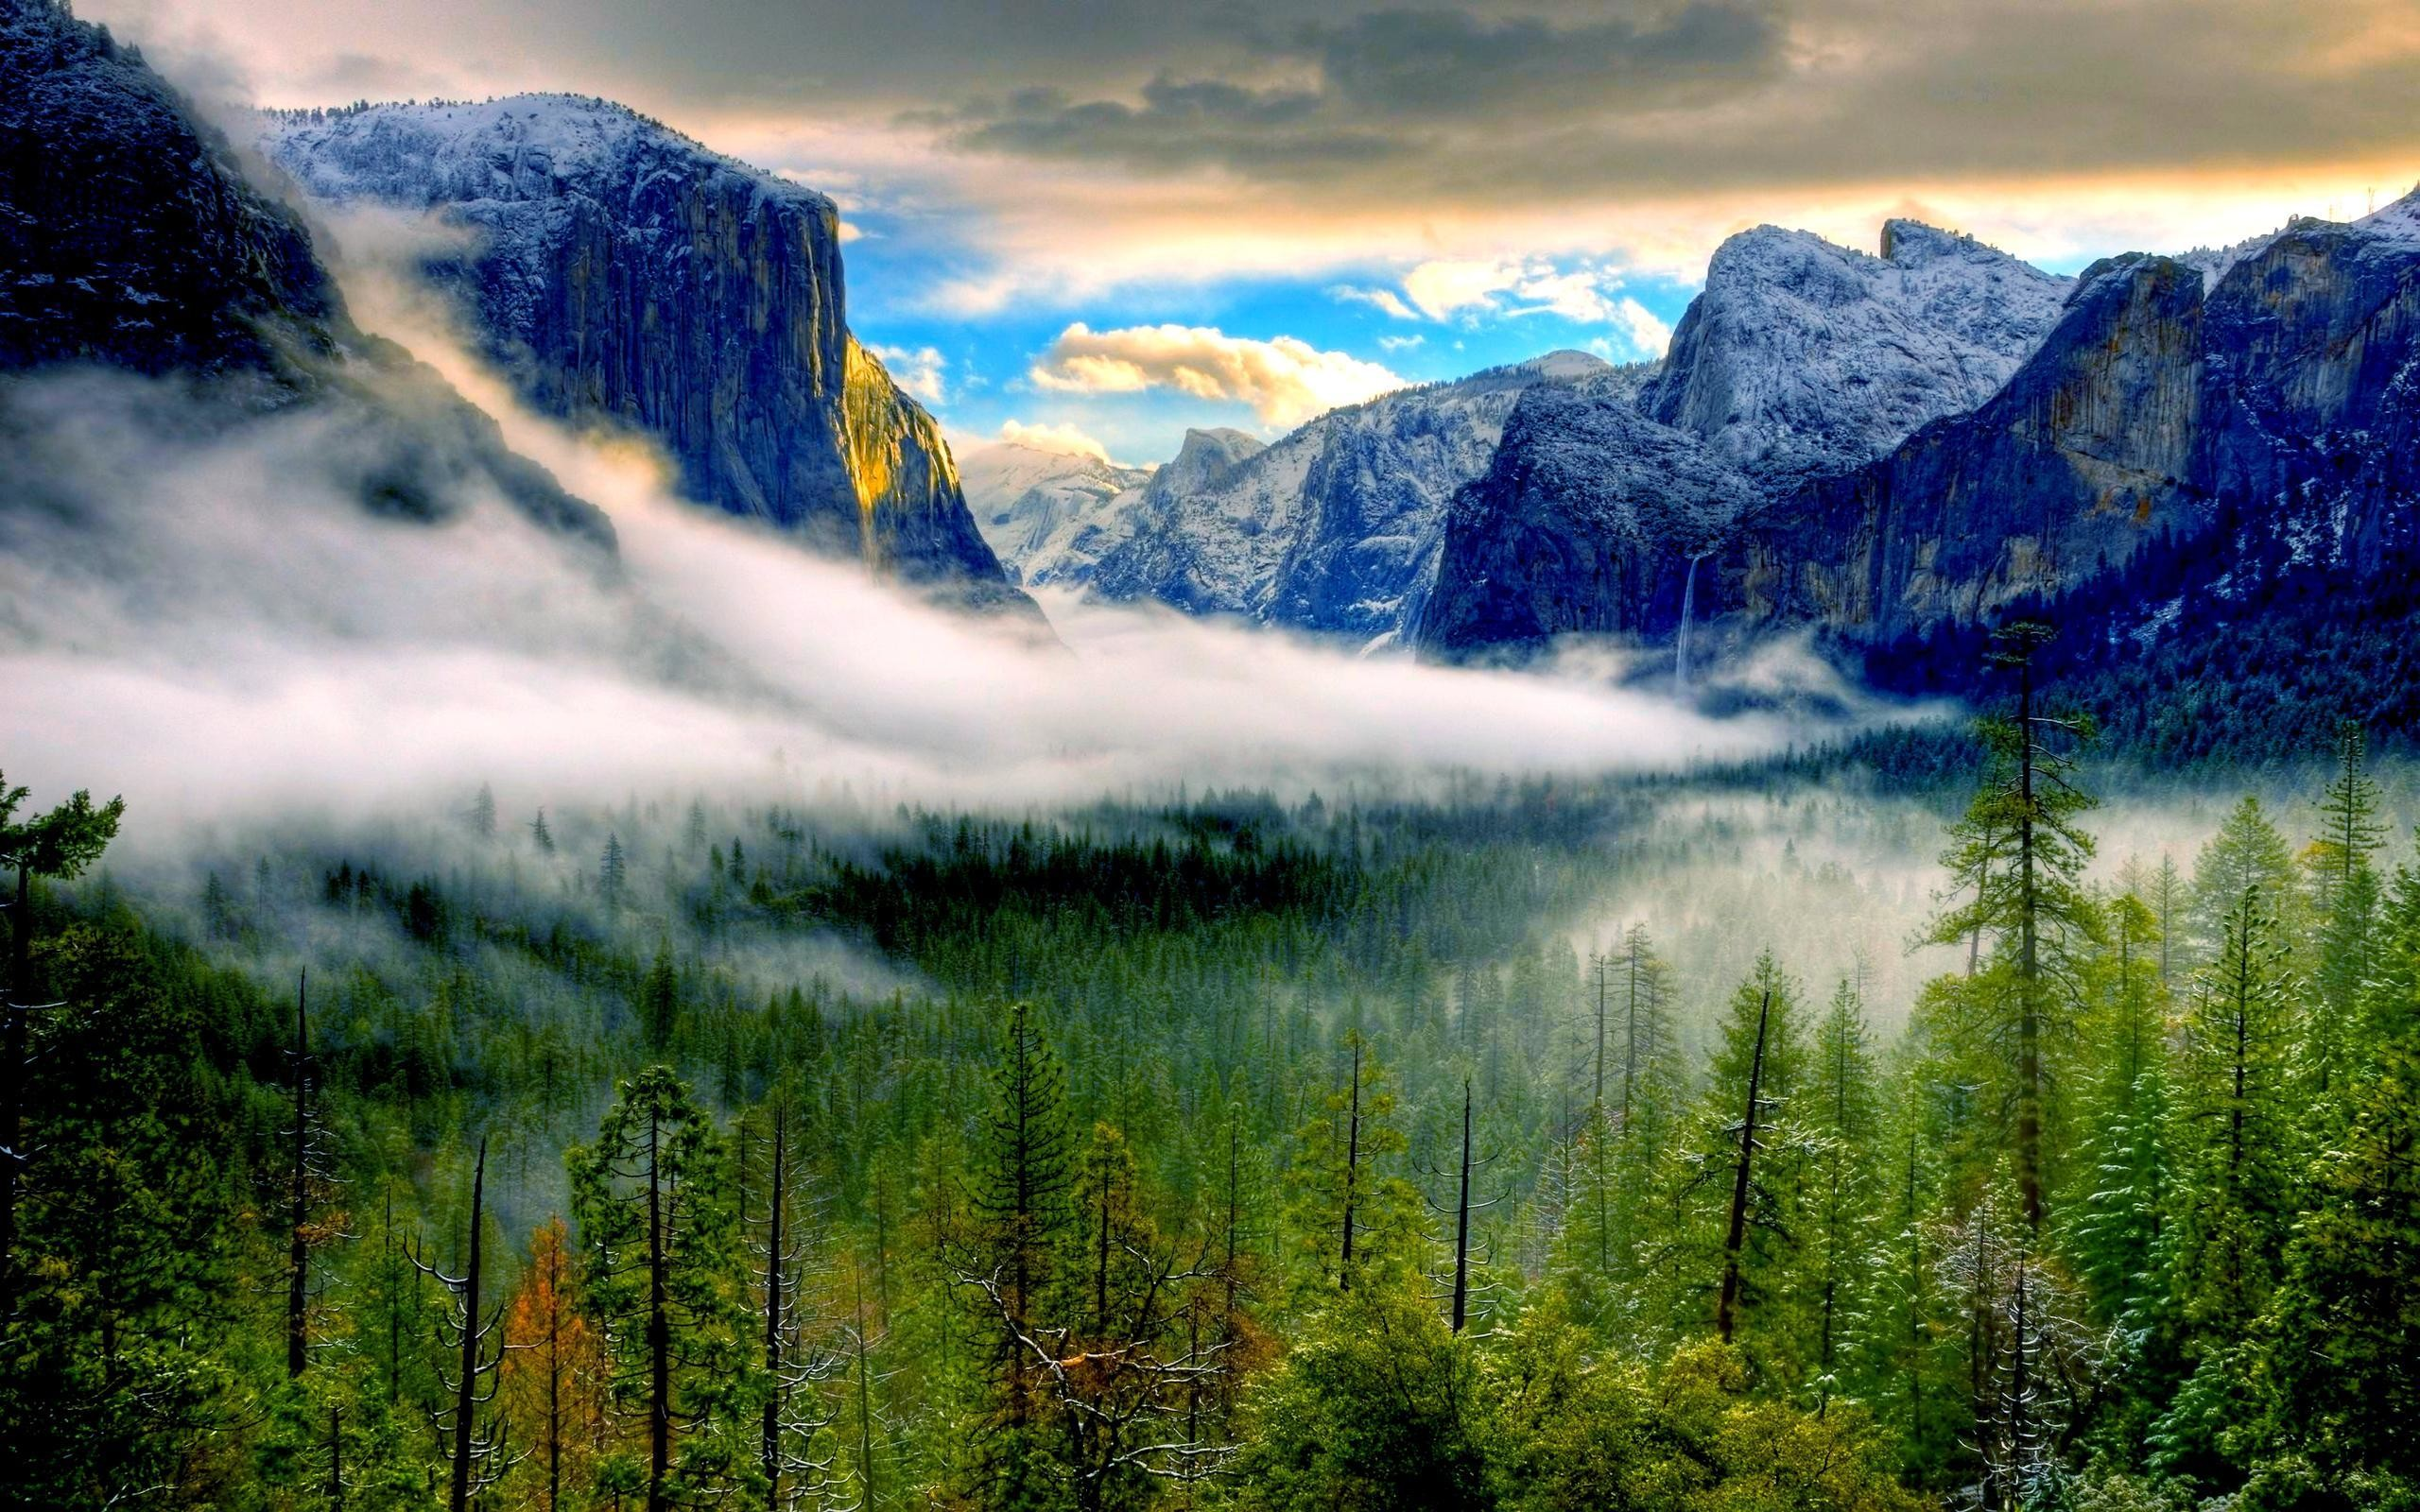 2560x1600 More wallpaper collections. 52 Wallpapers. mac os x yosemite wallpaper